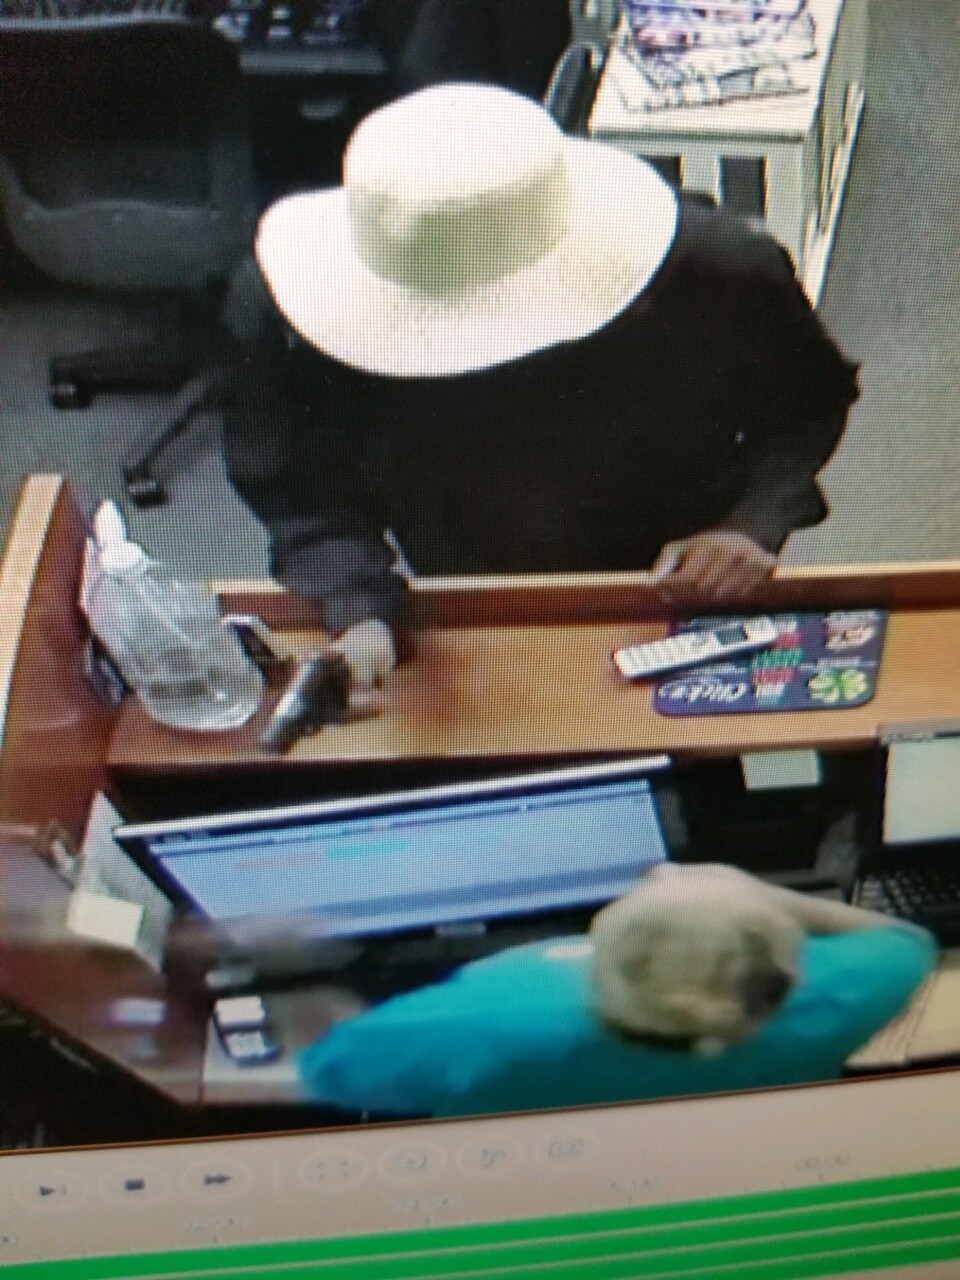 Photos: Man wearing white floppy hat wanted for Dinwiddie armed robbery